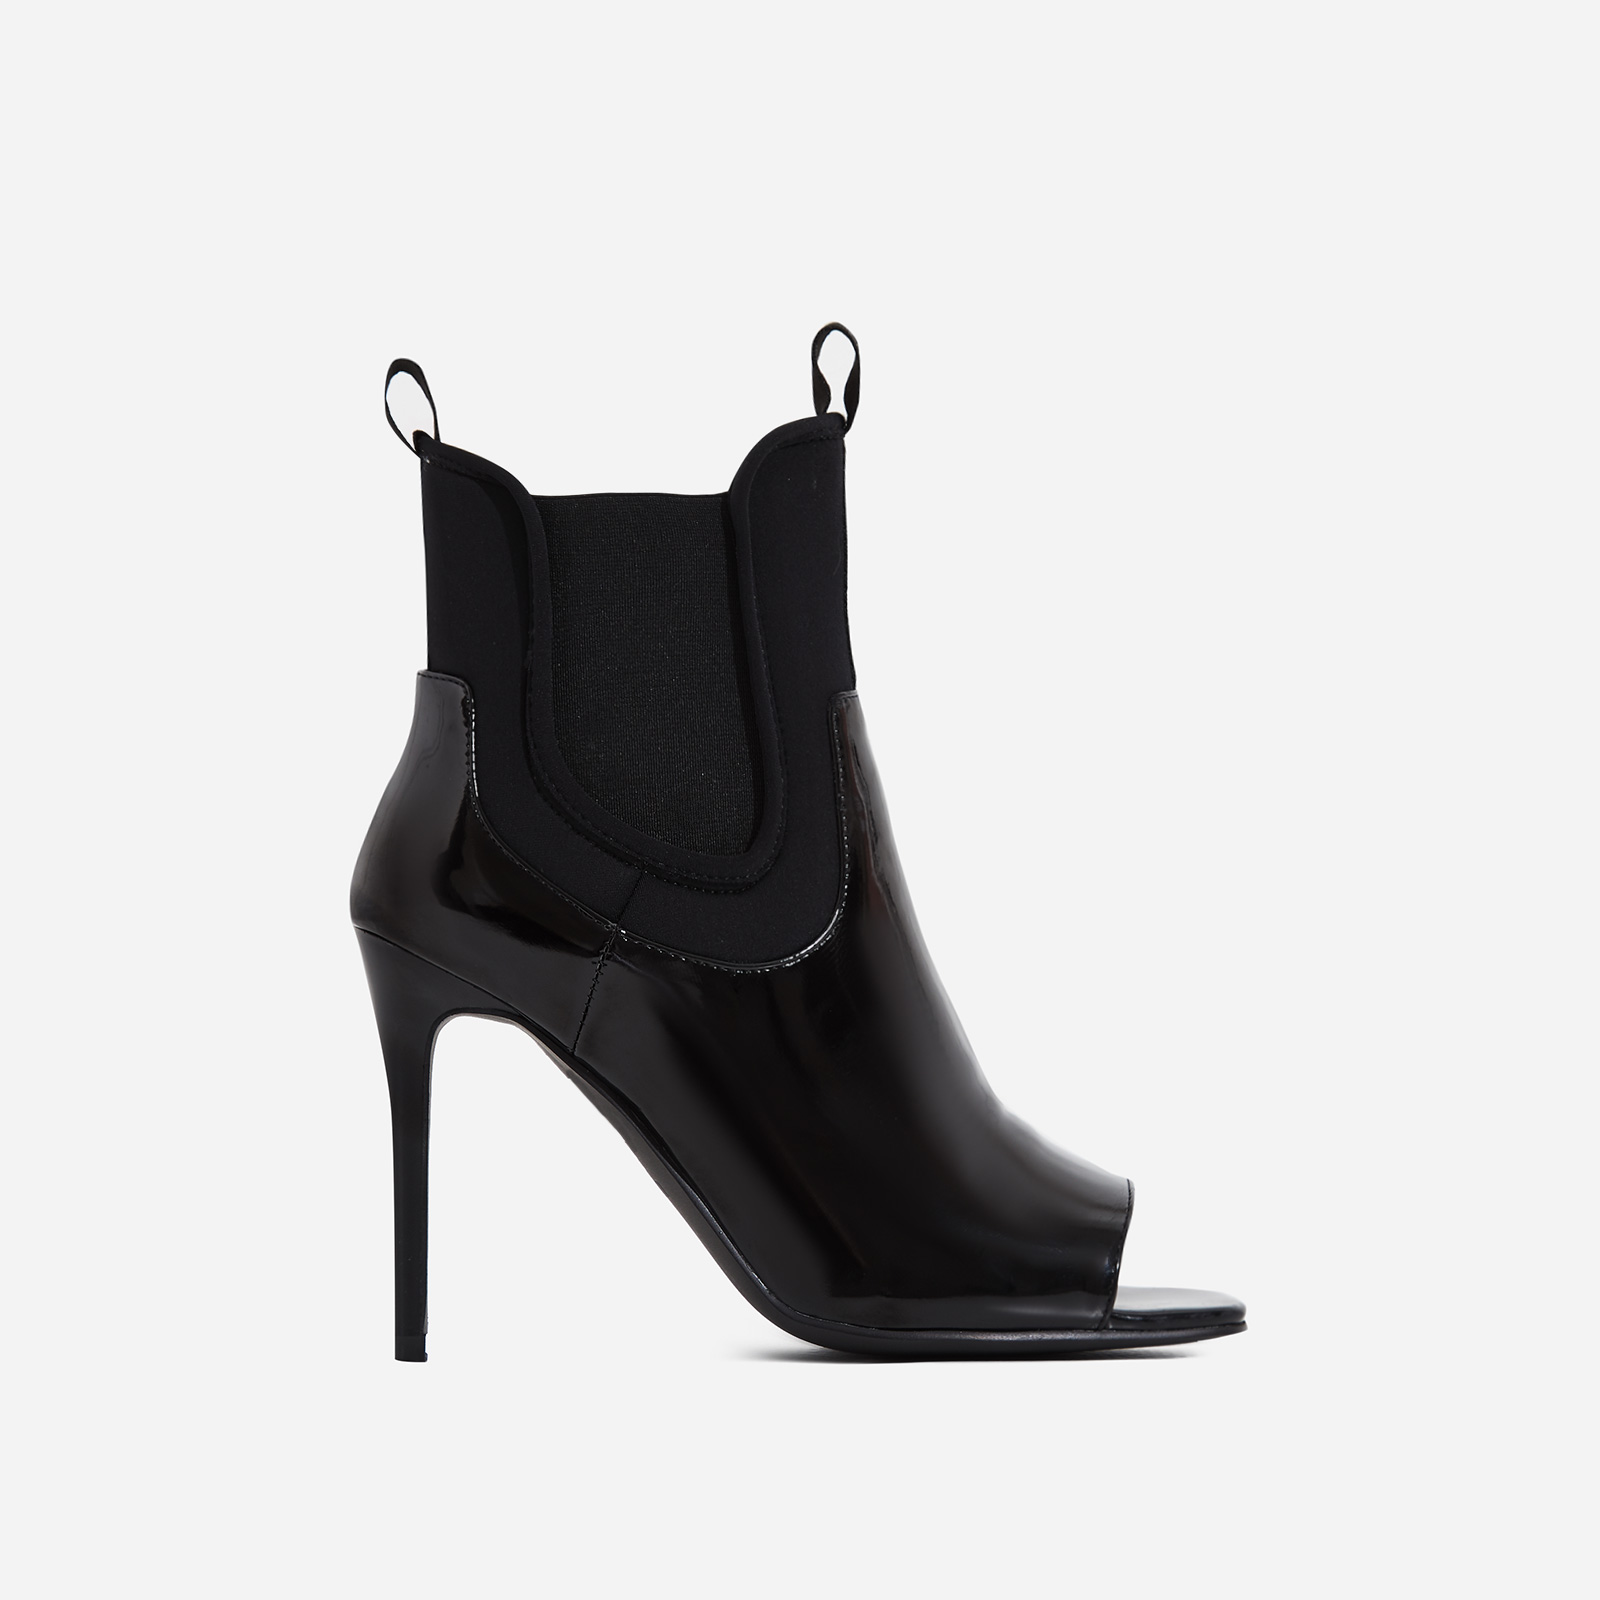 Rouge Black Lycra Trim Peep Toe Ankle Sock Boot In Black Patent